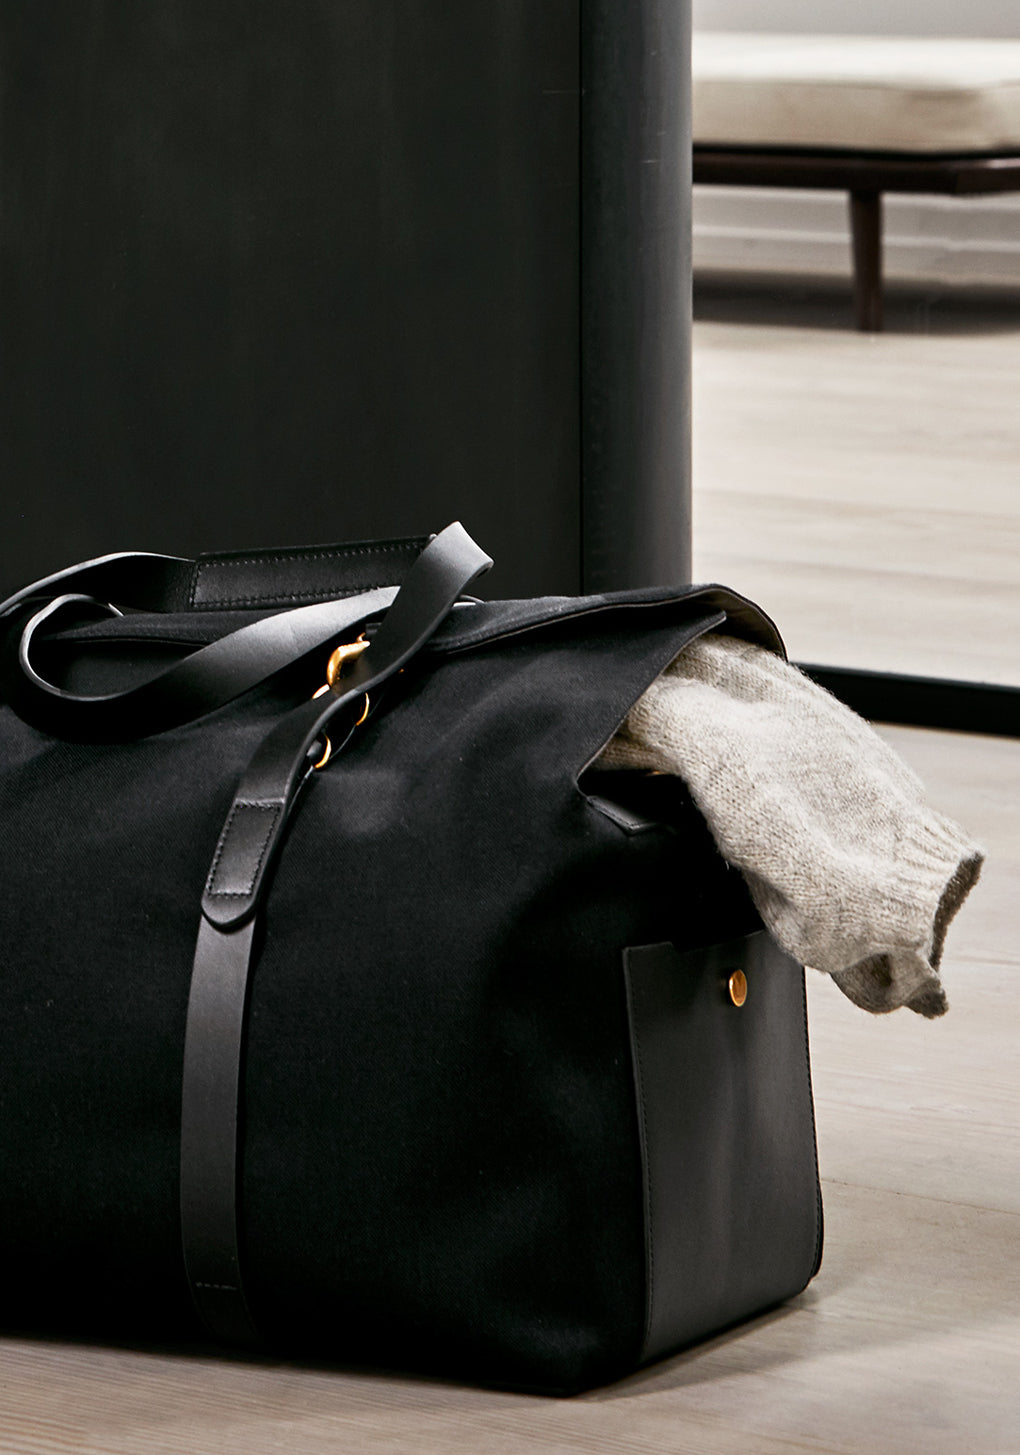 M/S Belt Bag - Coal/Black collection 1